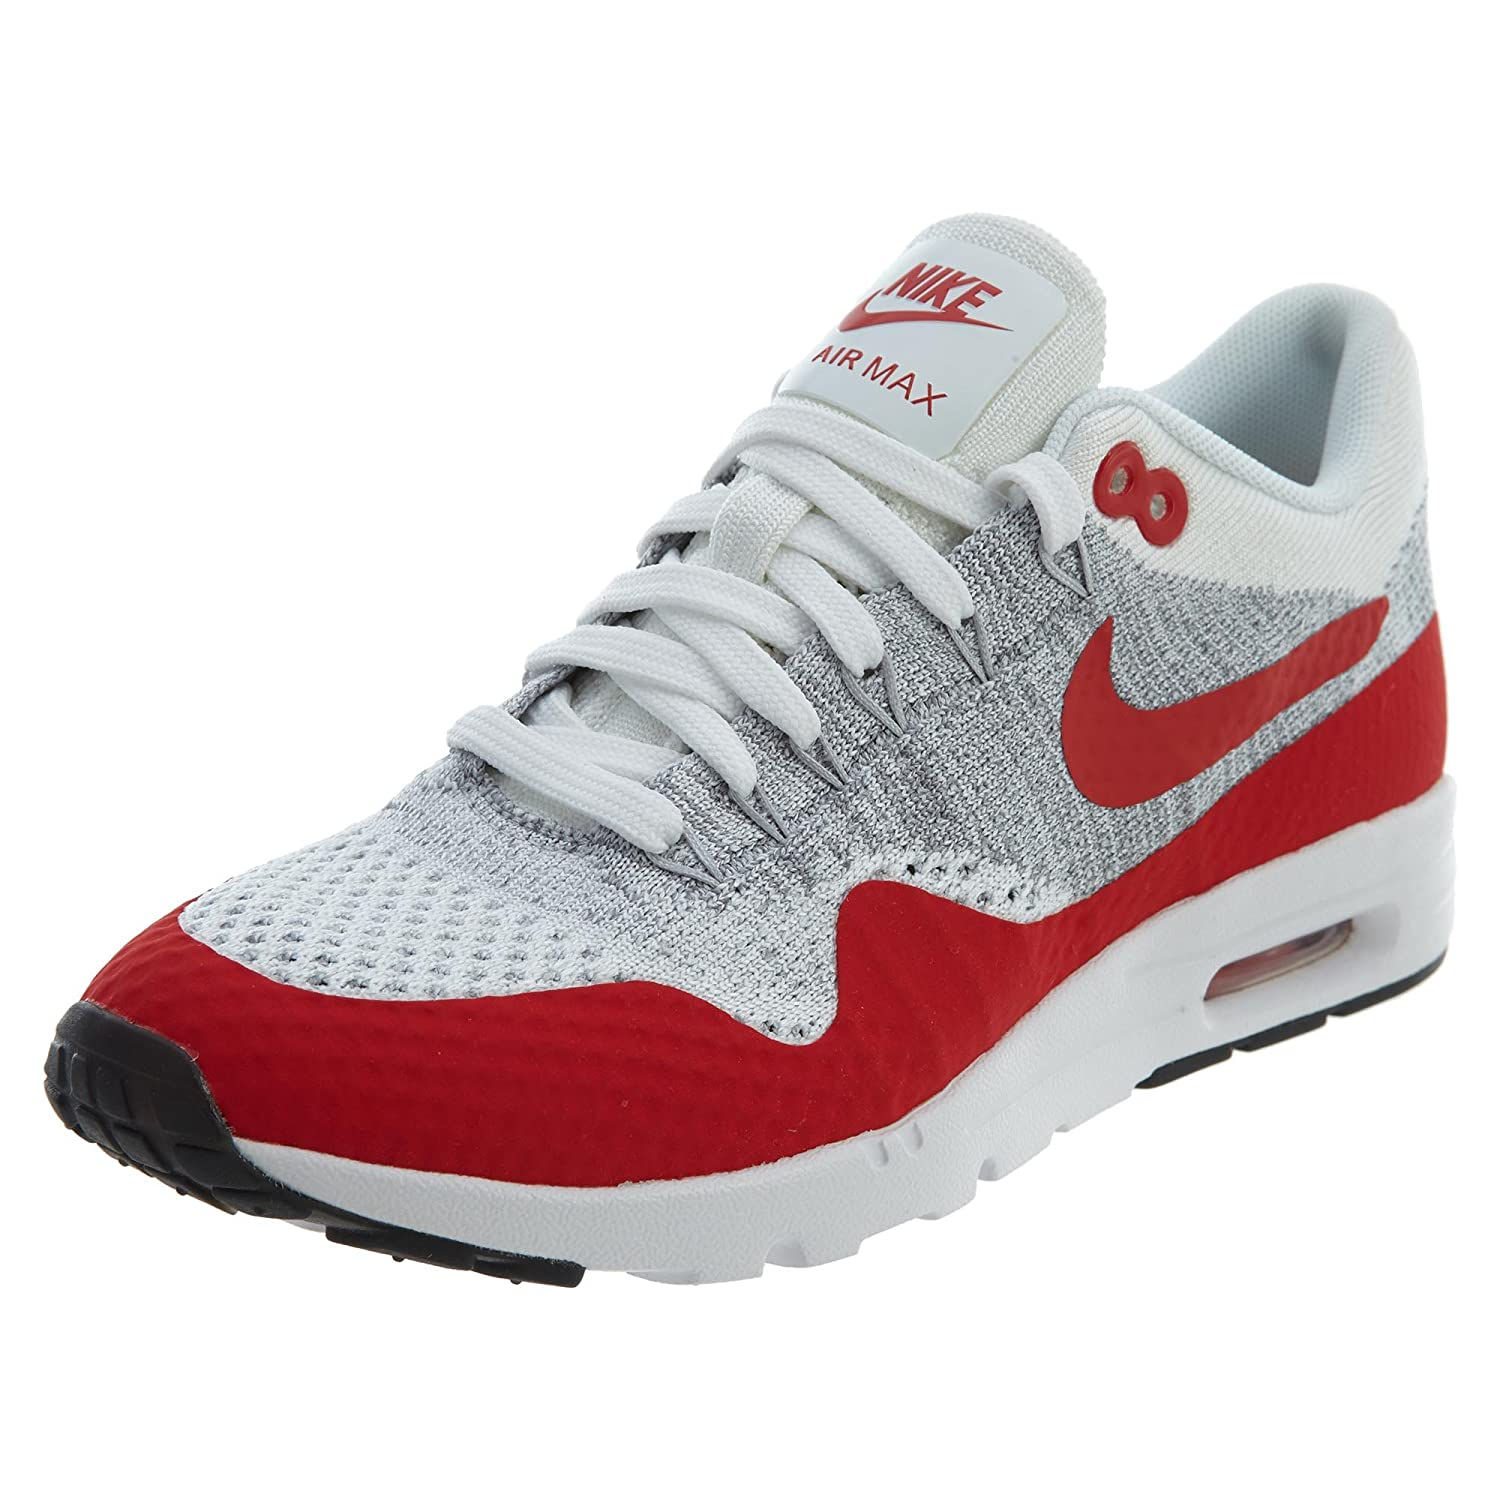 buy popular 443da 5ae56 Amazon.com   Nike Air Max 1 Ultra Flyknit Women s Running Shoes   Road  Running